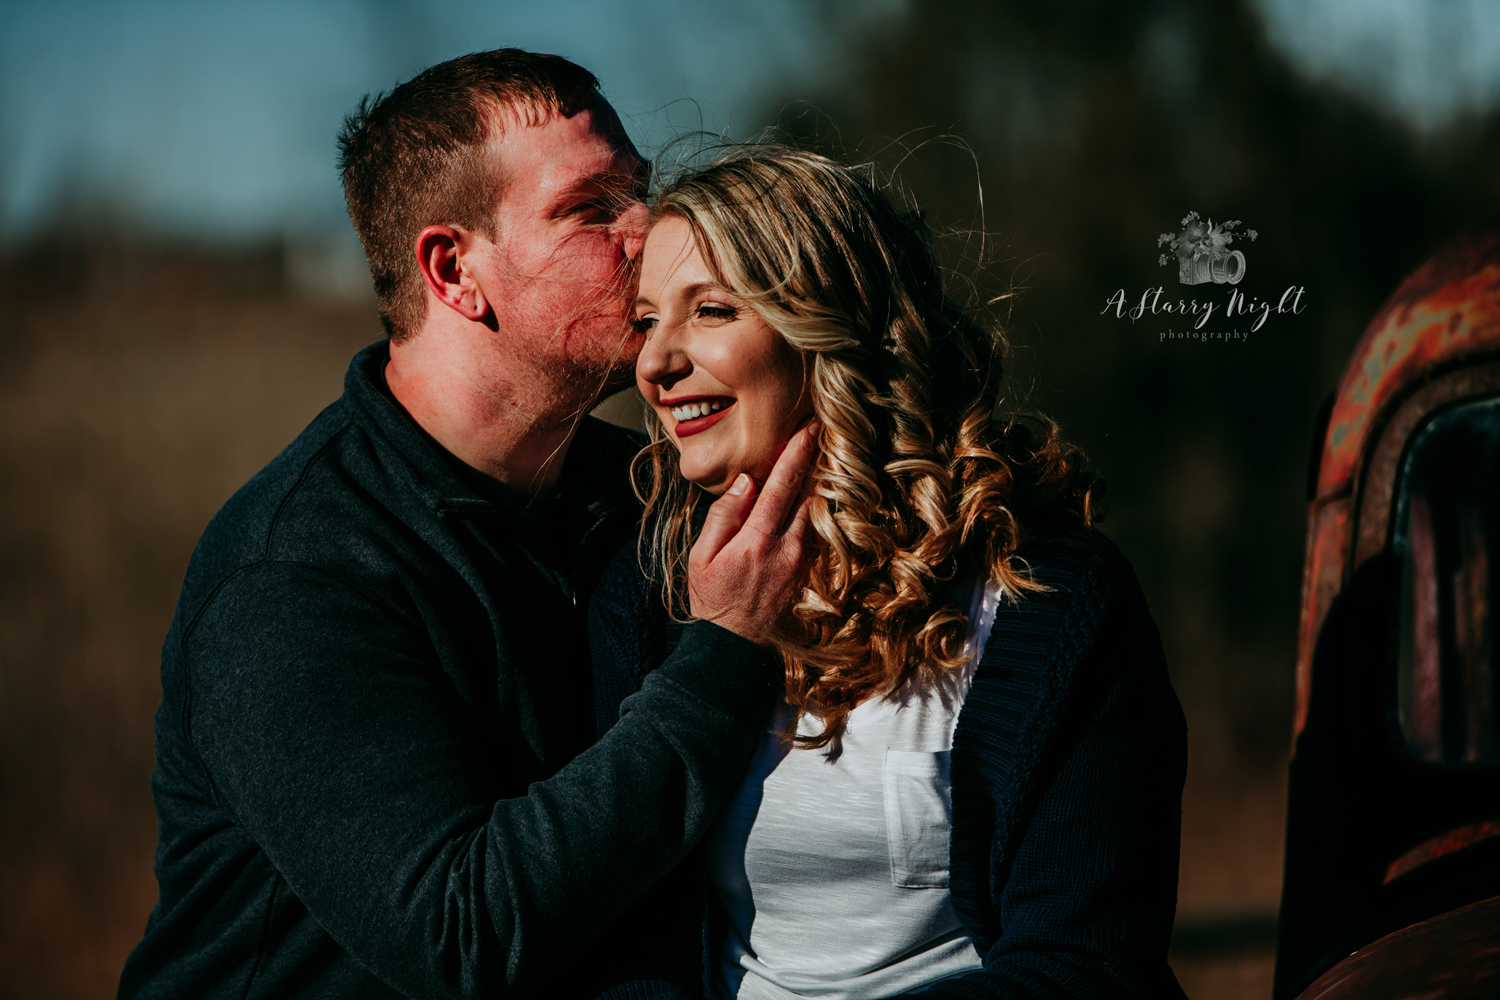 Soon to be groom kissing his fiance during their engagement session at Crooked River Weddings